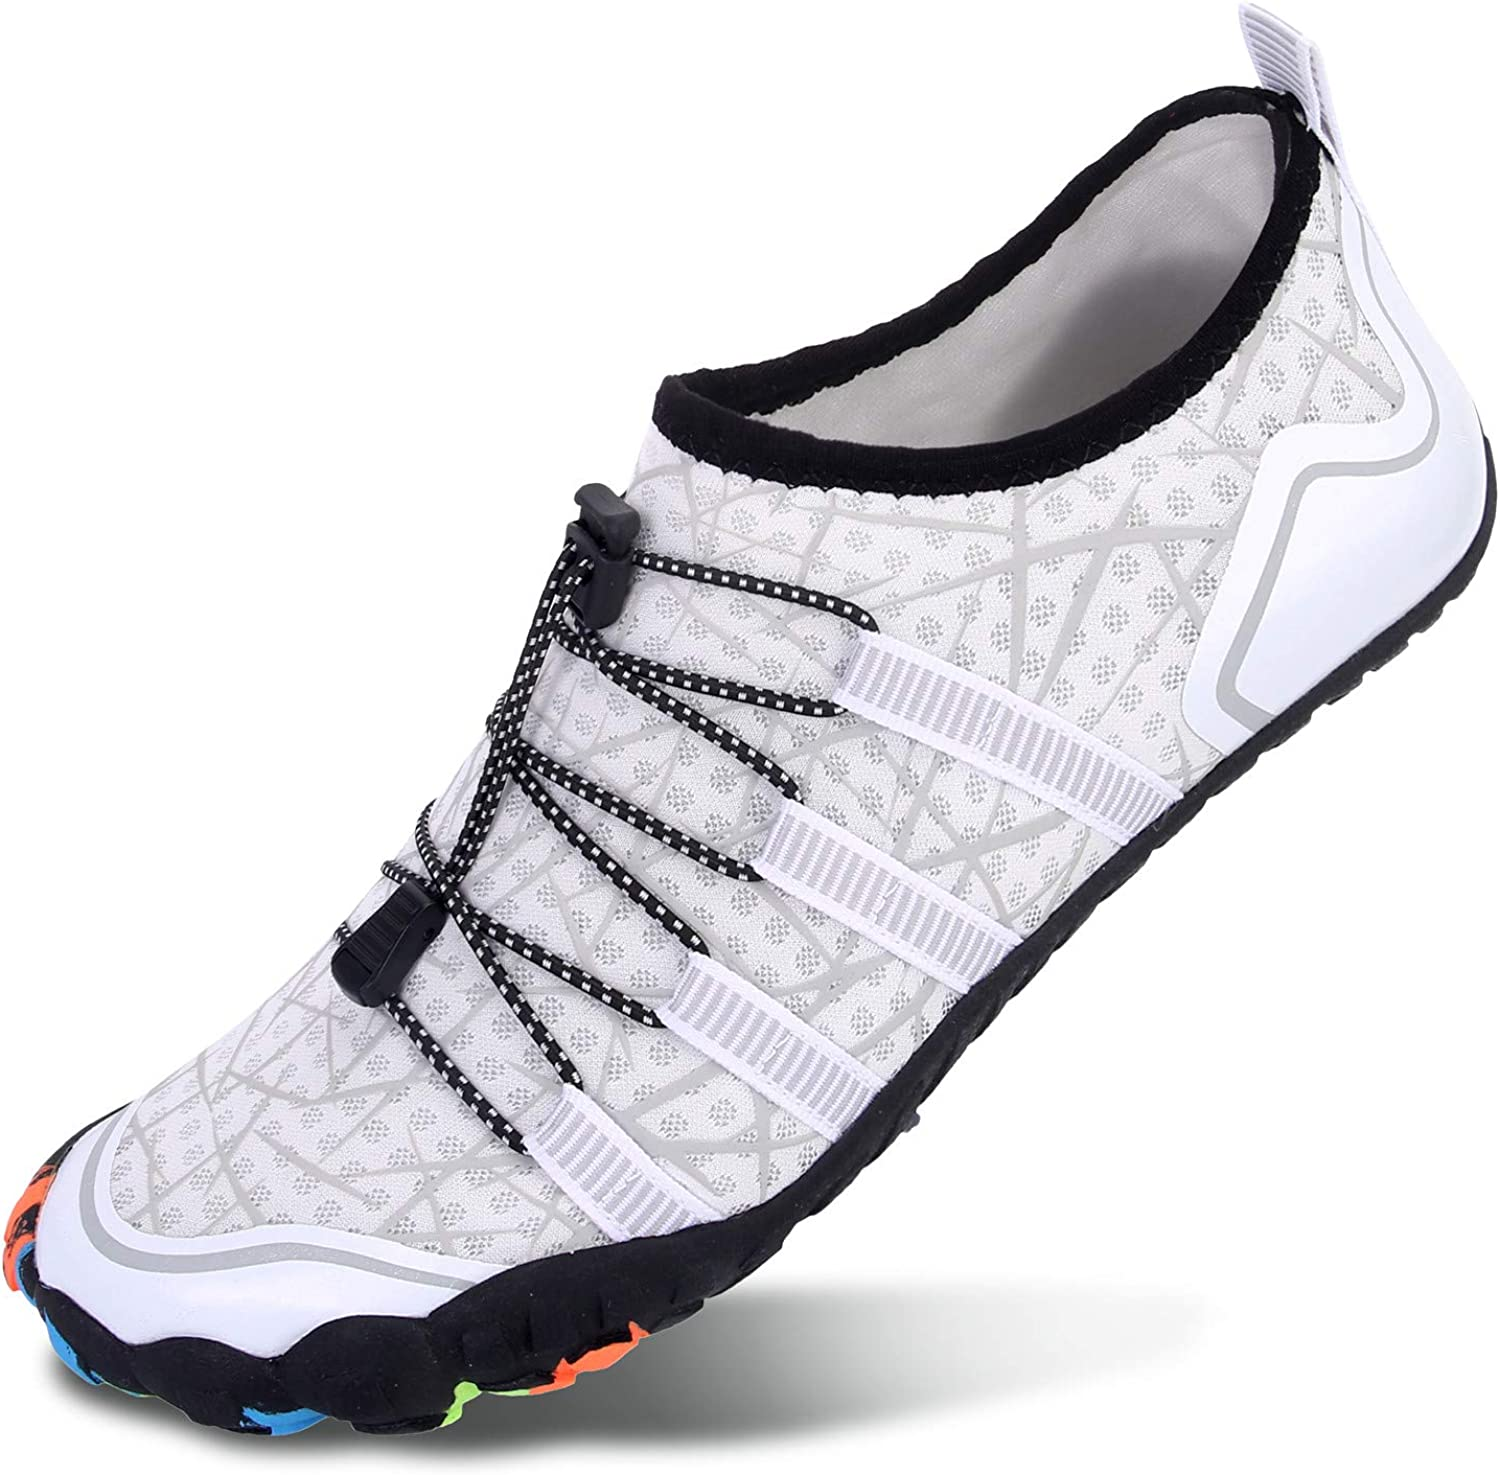 L-RUN Athletic Hiking Water Shoes Mens Womens Barefoot Aqua Swim Walking Shoe